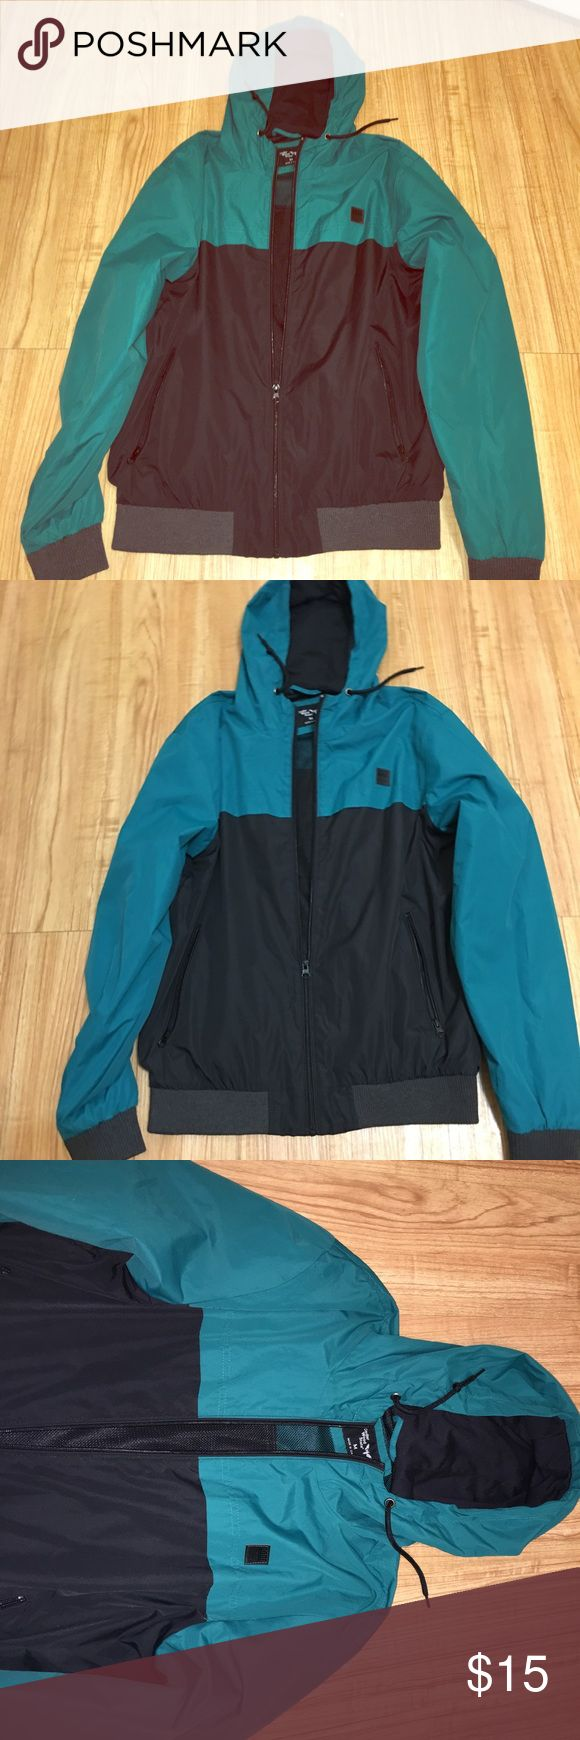 Vintage Windbreaker Has a vintage feel! Very nice color scheme. Jackets & Coats Windbreakers